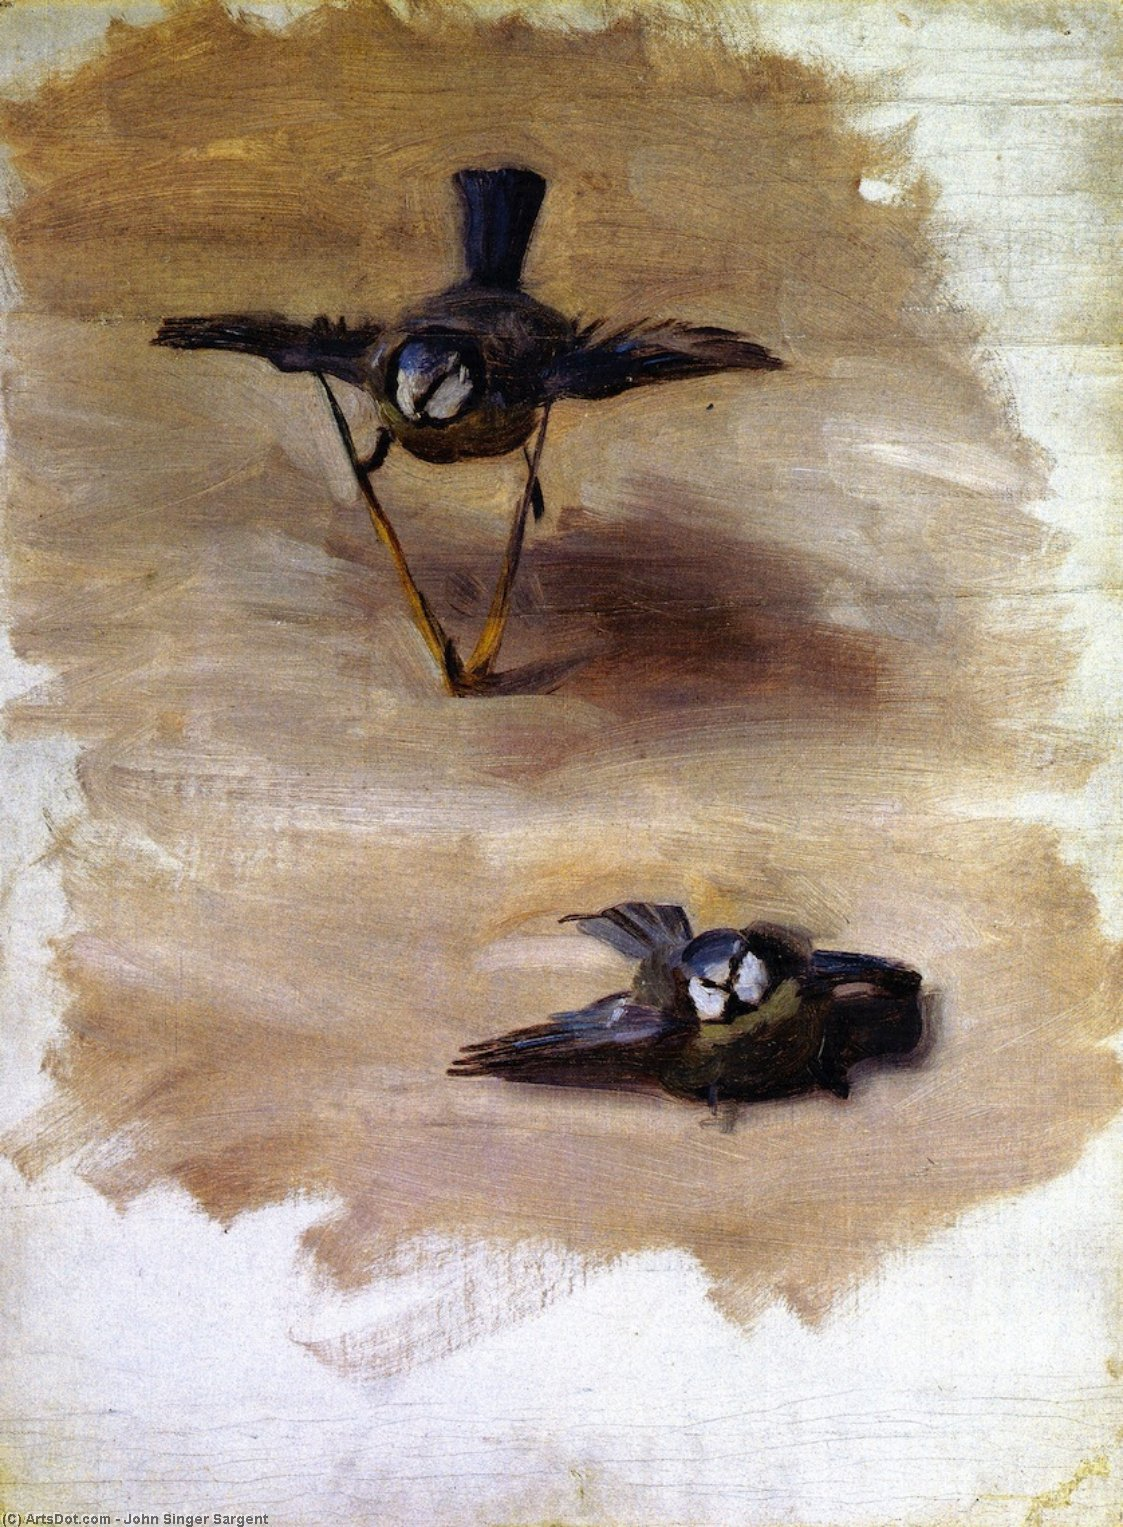 Order Paintings Reproductions | Studies of a Dead Bird, 1874 by John Singer Sargent (1856-1925, Italy) | ArtsDot.com